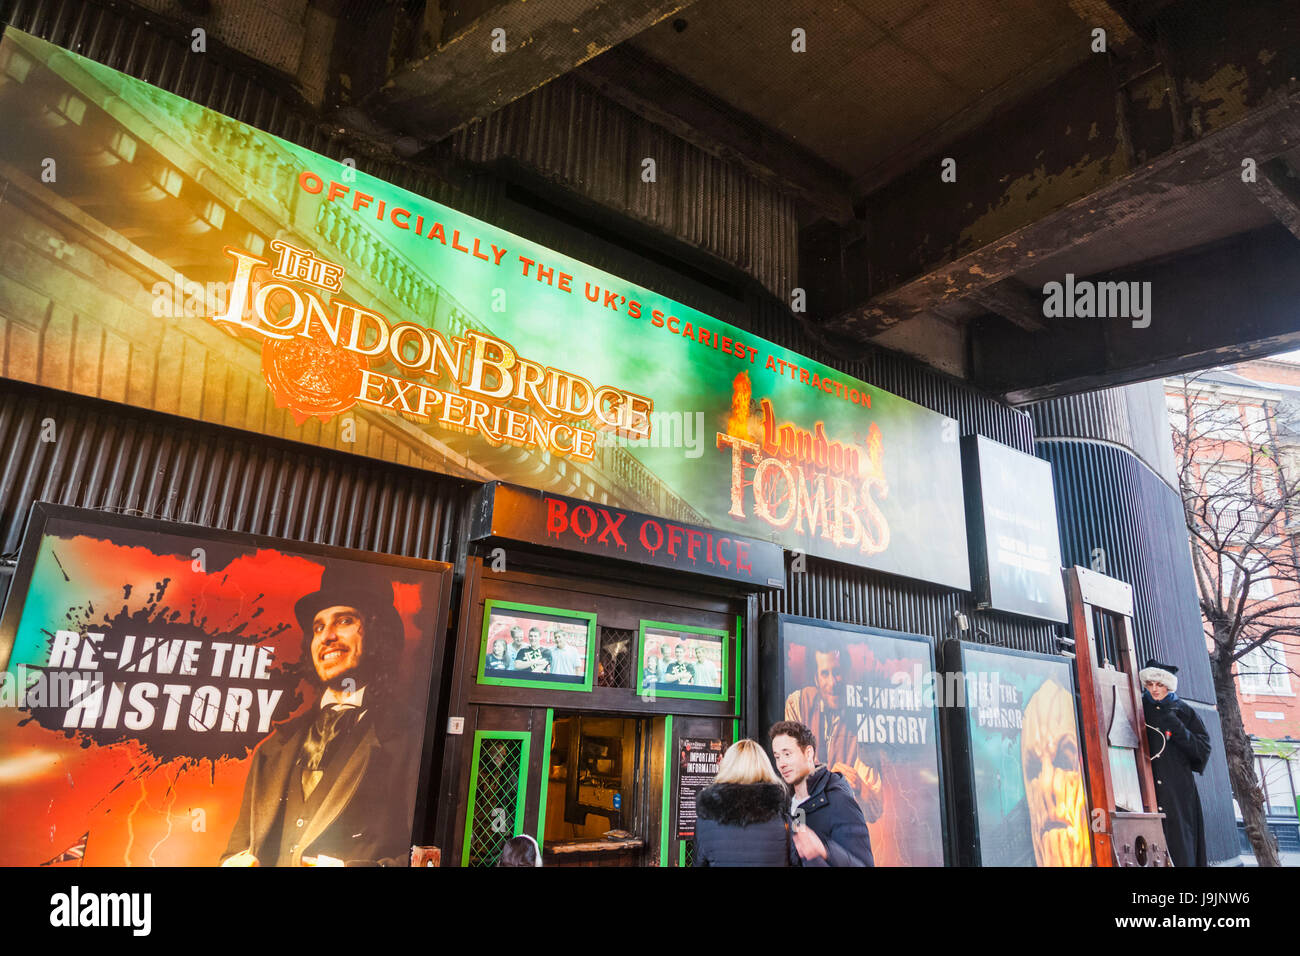 England, London, Southwark, The London Bridge Experience and London Tombs Attraction Ticket Office - Stock Image